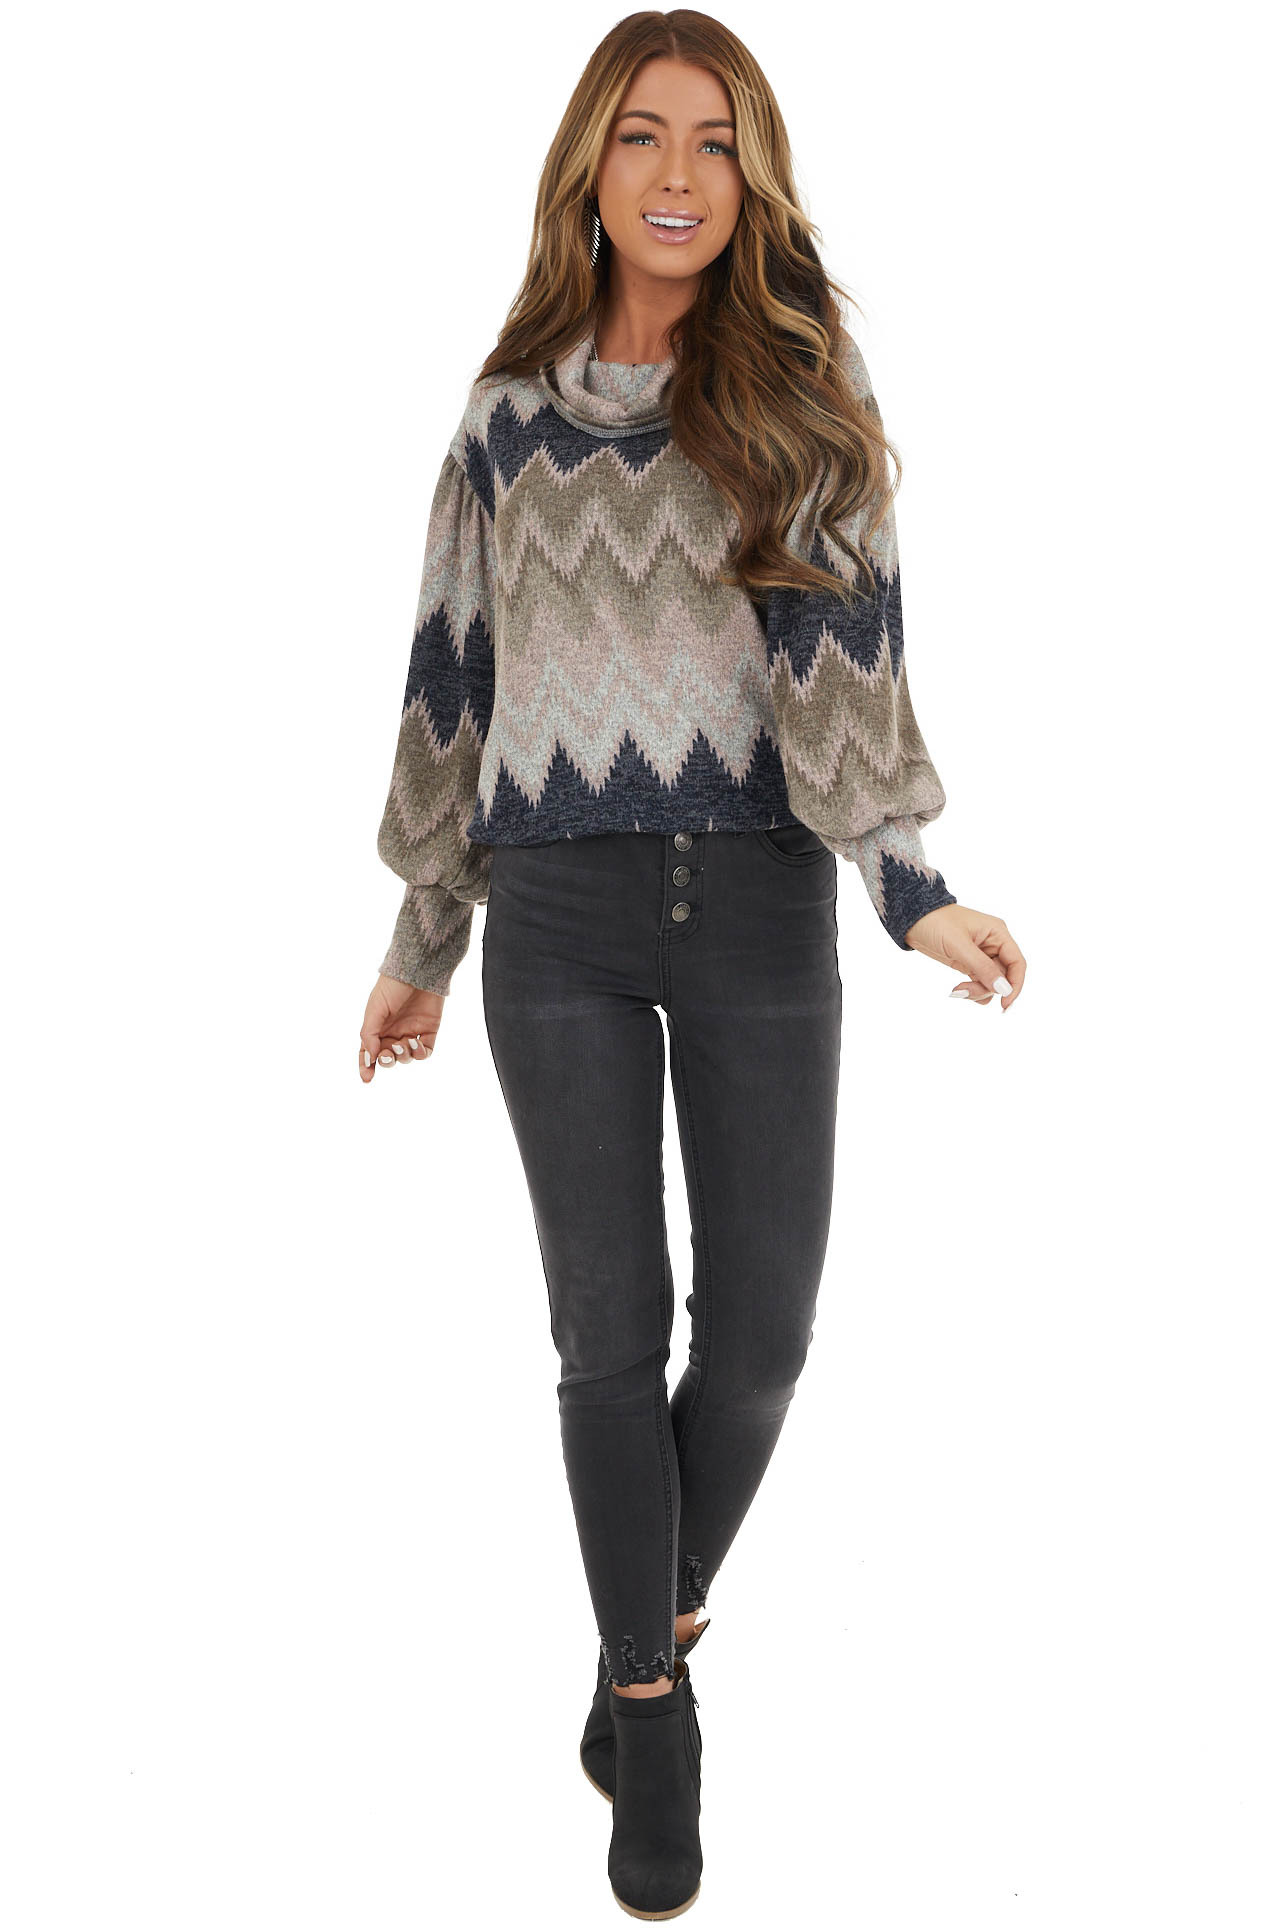 Blush Multicolor Zigzag Print Knit Top with Cowl Neck